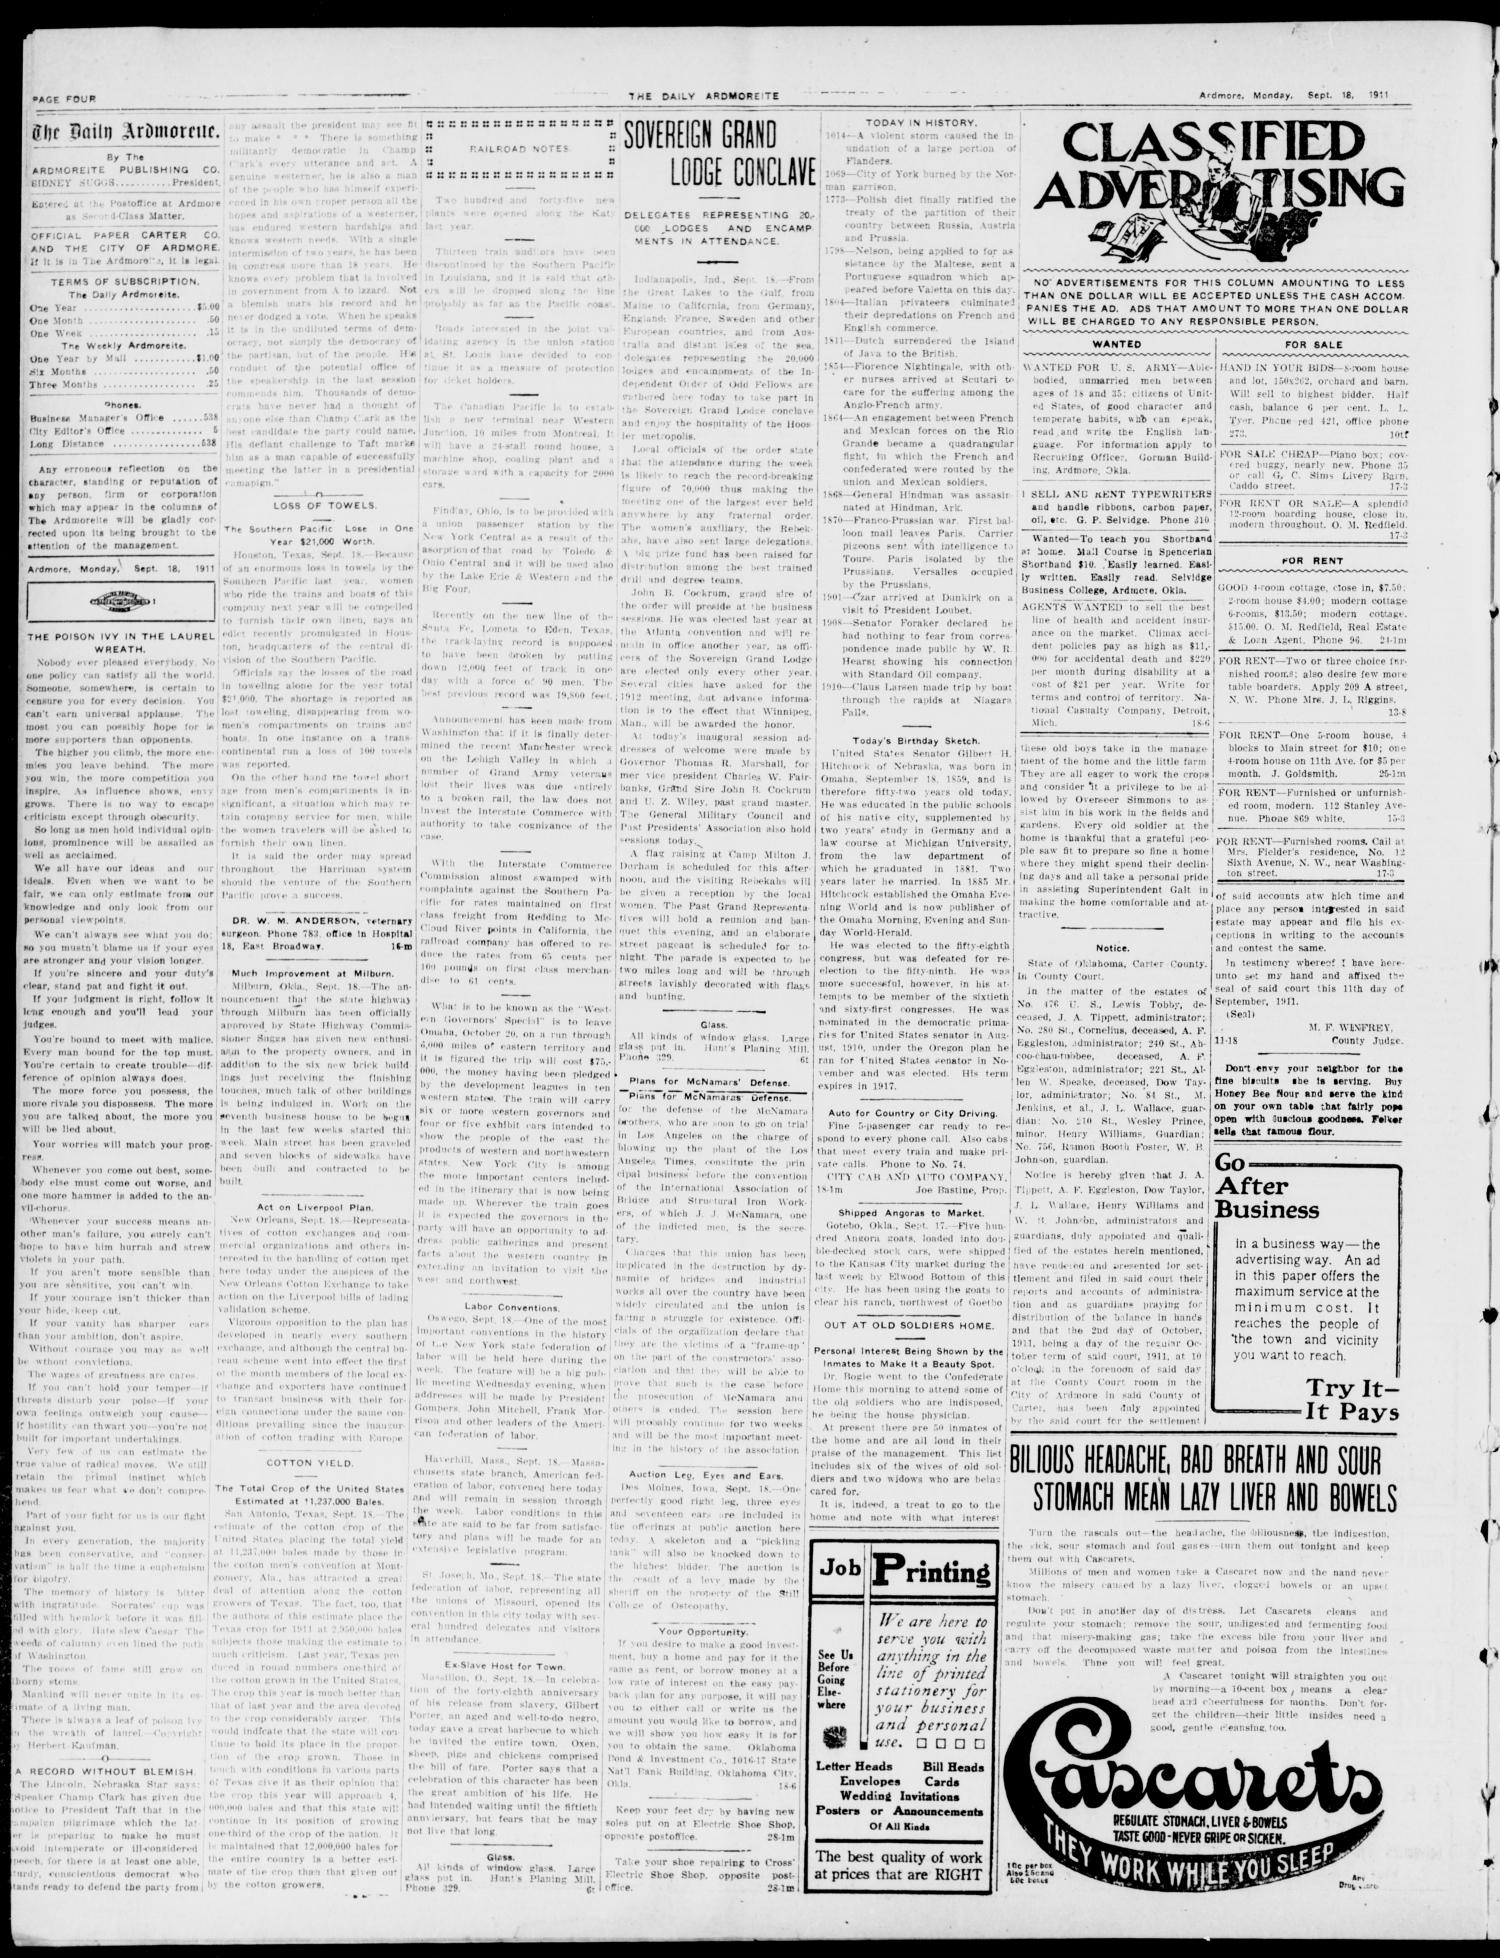 The Daily Ardmoreite. (Ardmore, Okla.), Vol. 17, No. 297, Ed. 1 Monday, September 18, 1911                                                                                                      [Sequence #]: 4 of 8